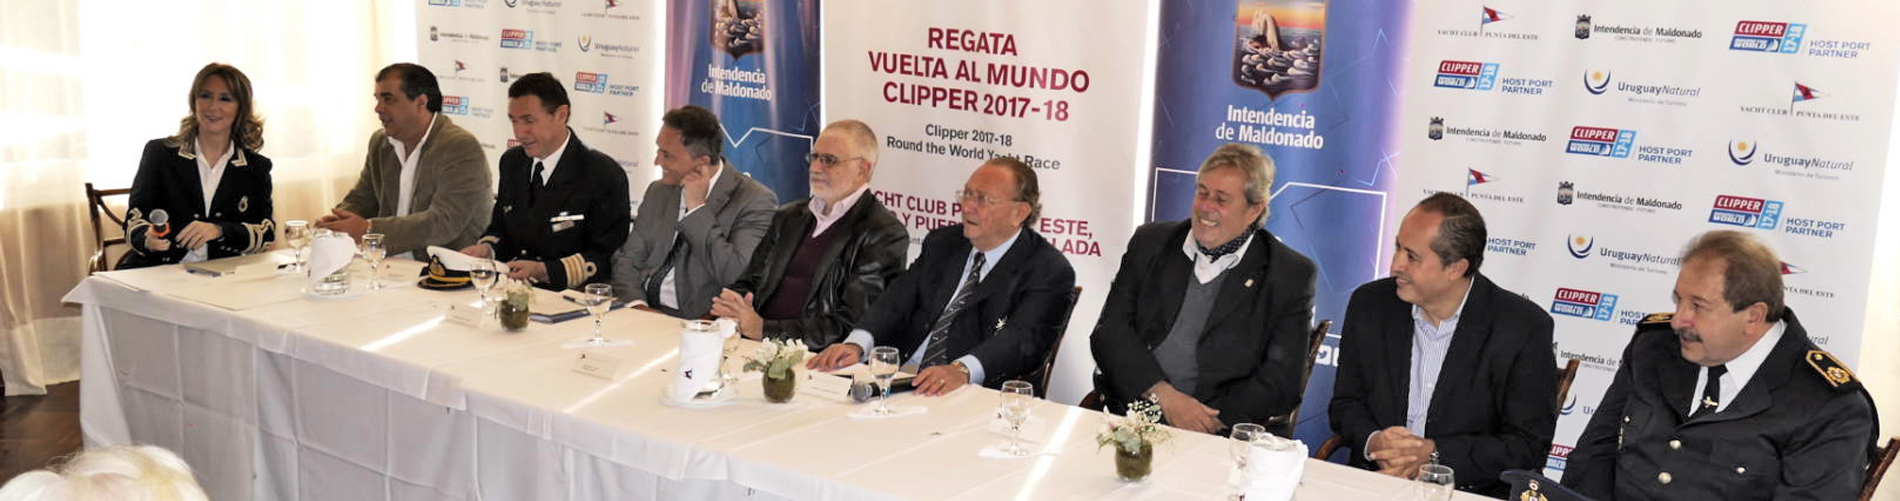 conferencia clipper rice